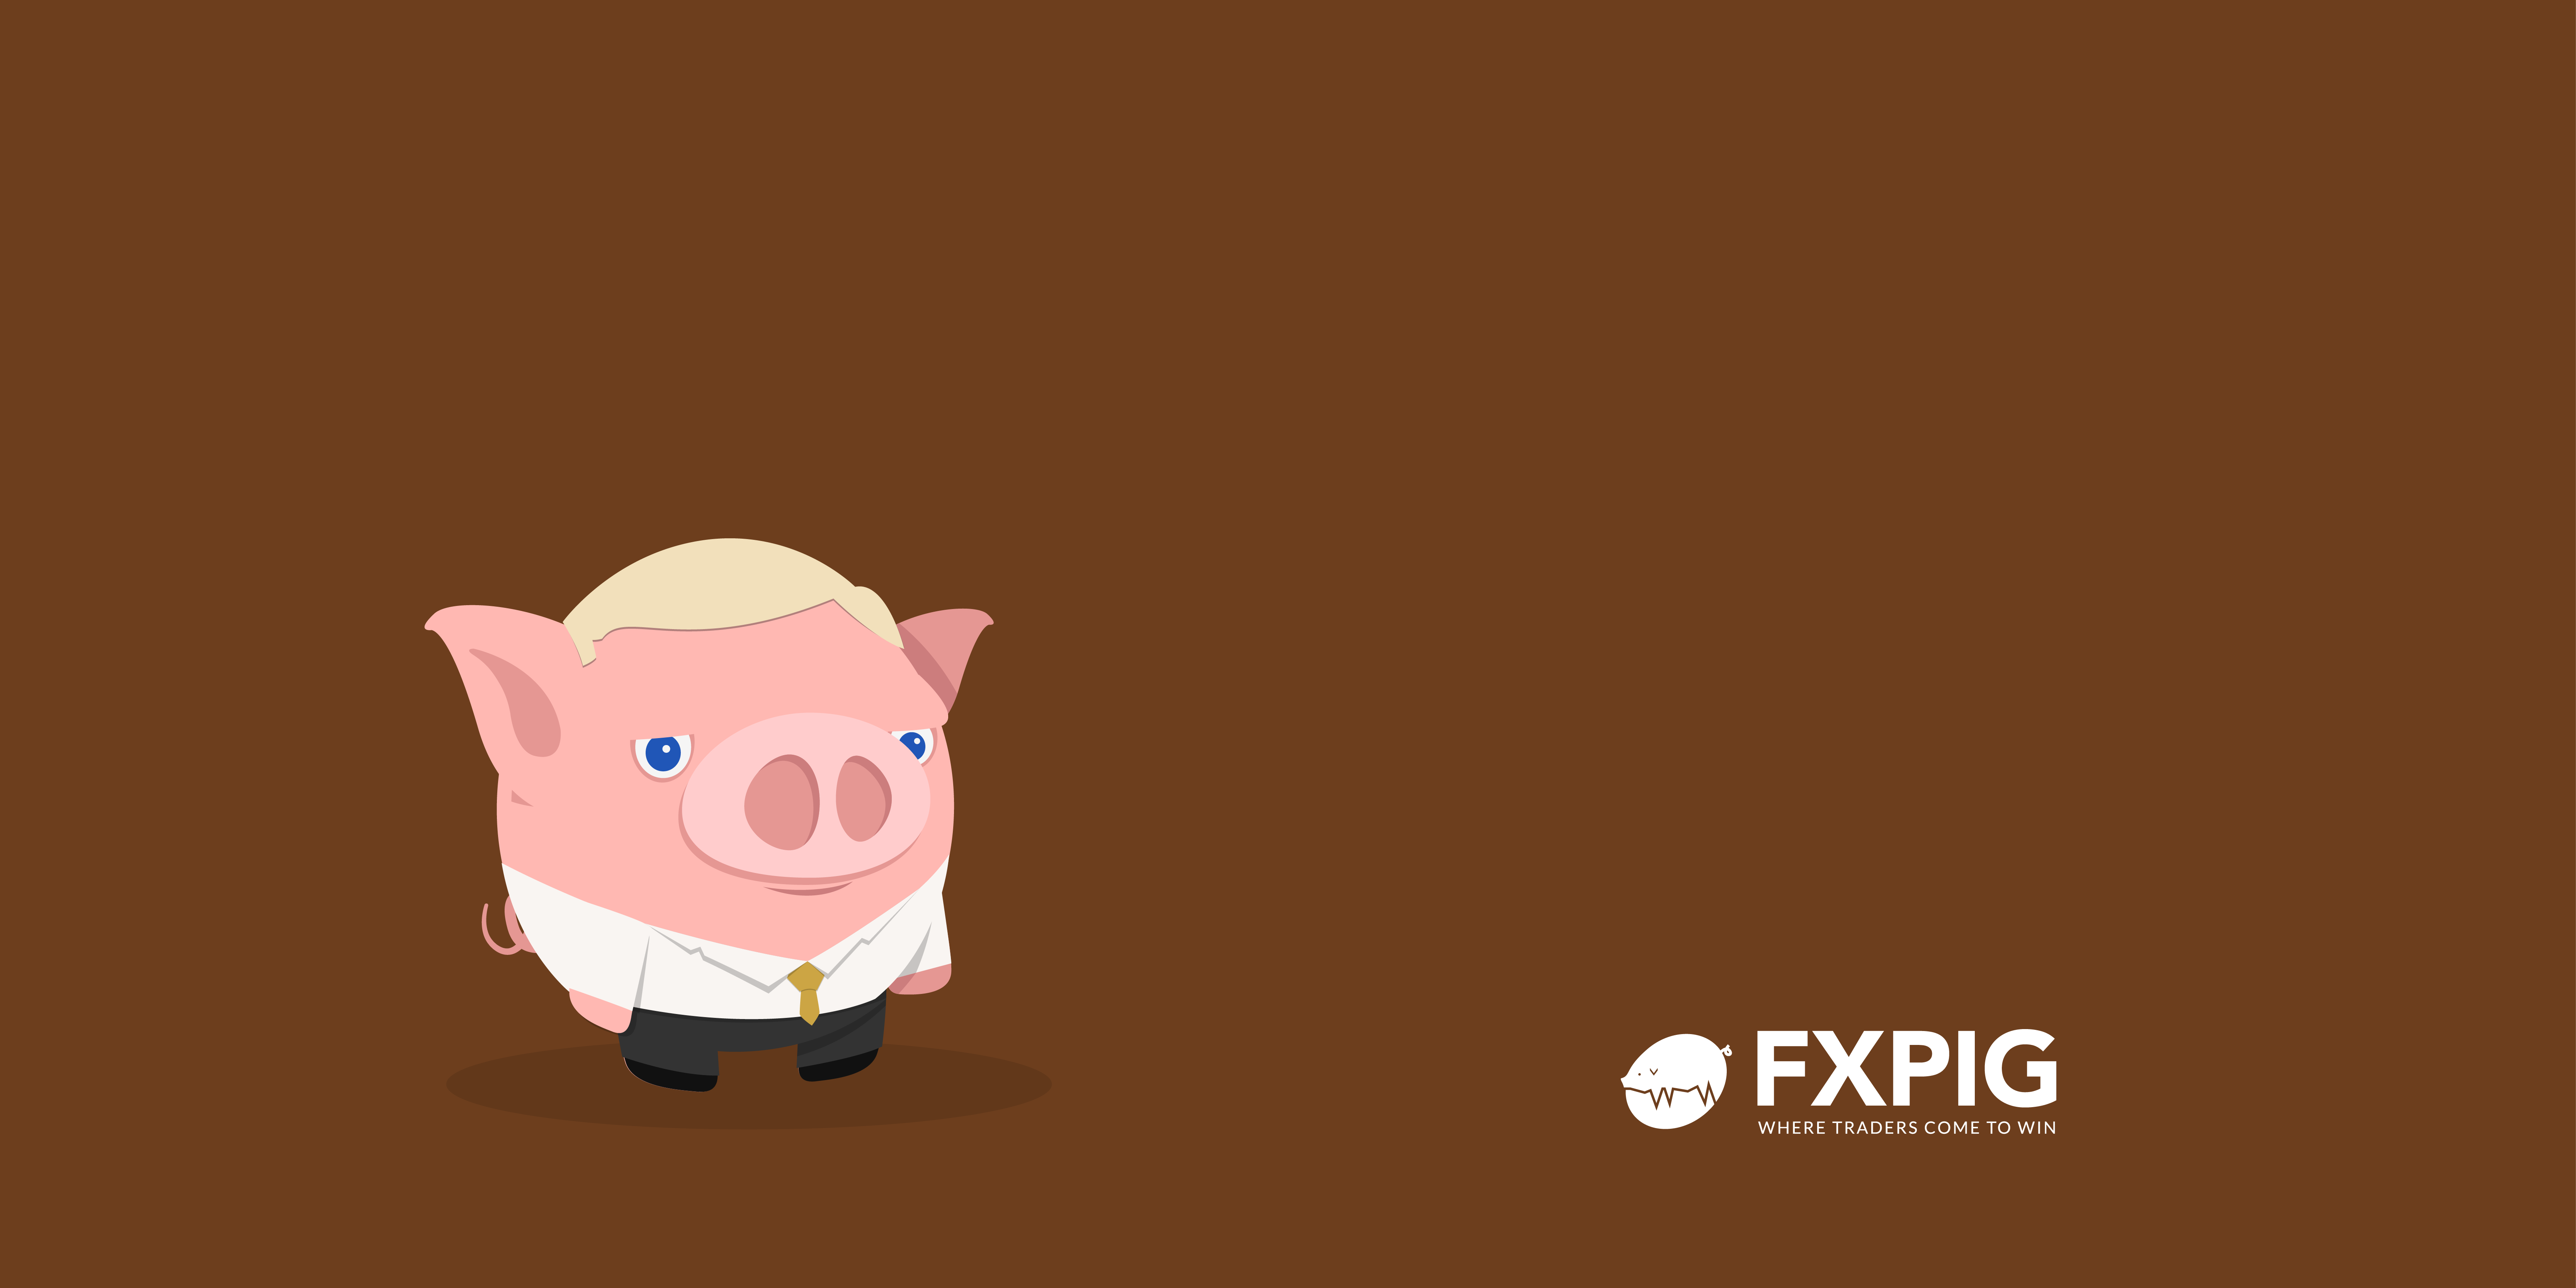 FOREX_trading-quote-ed-seykota2407_FXPIG